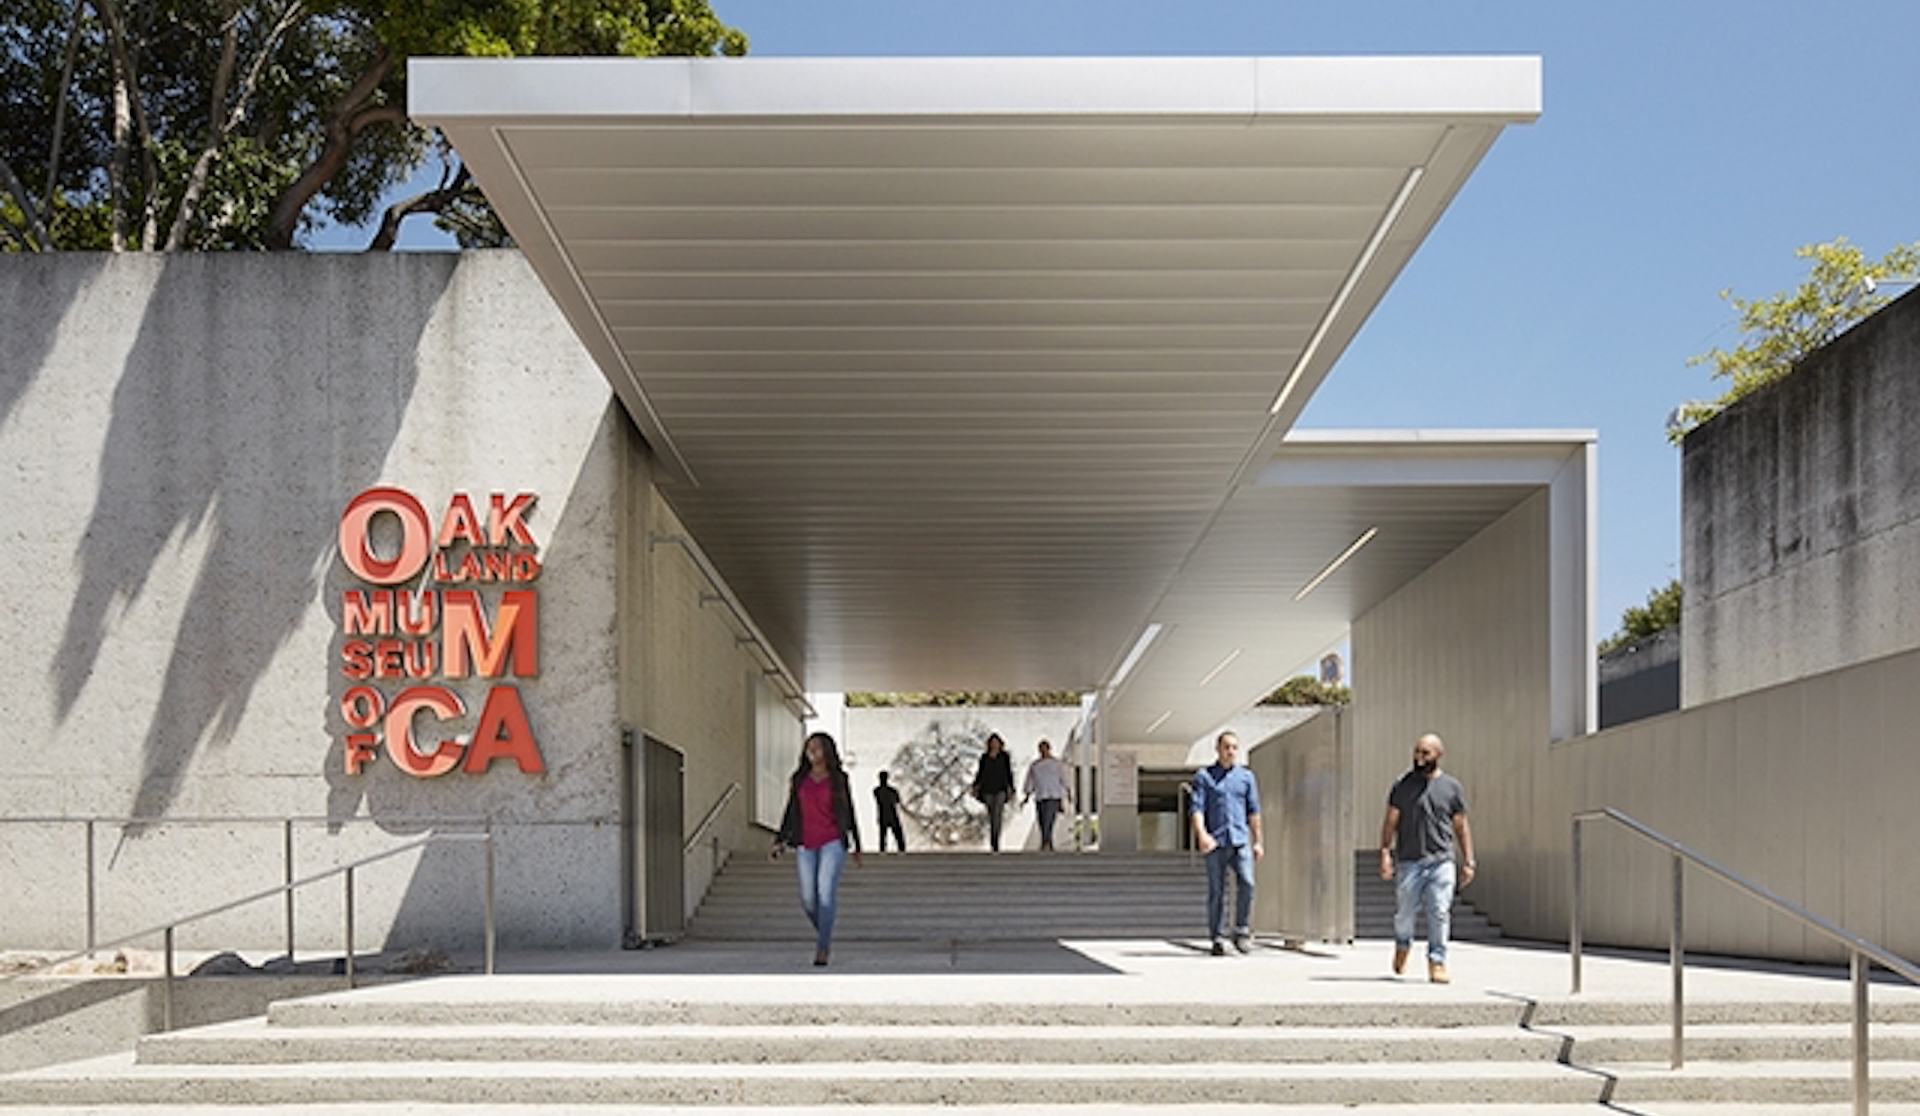 Plunging hotel tax revenue threatens an important funding source for the Oakland Museum of California.